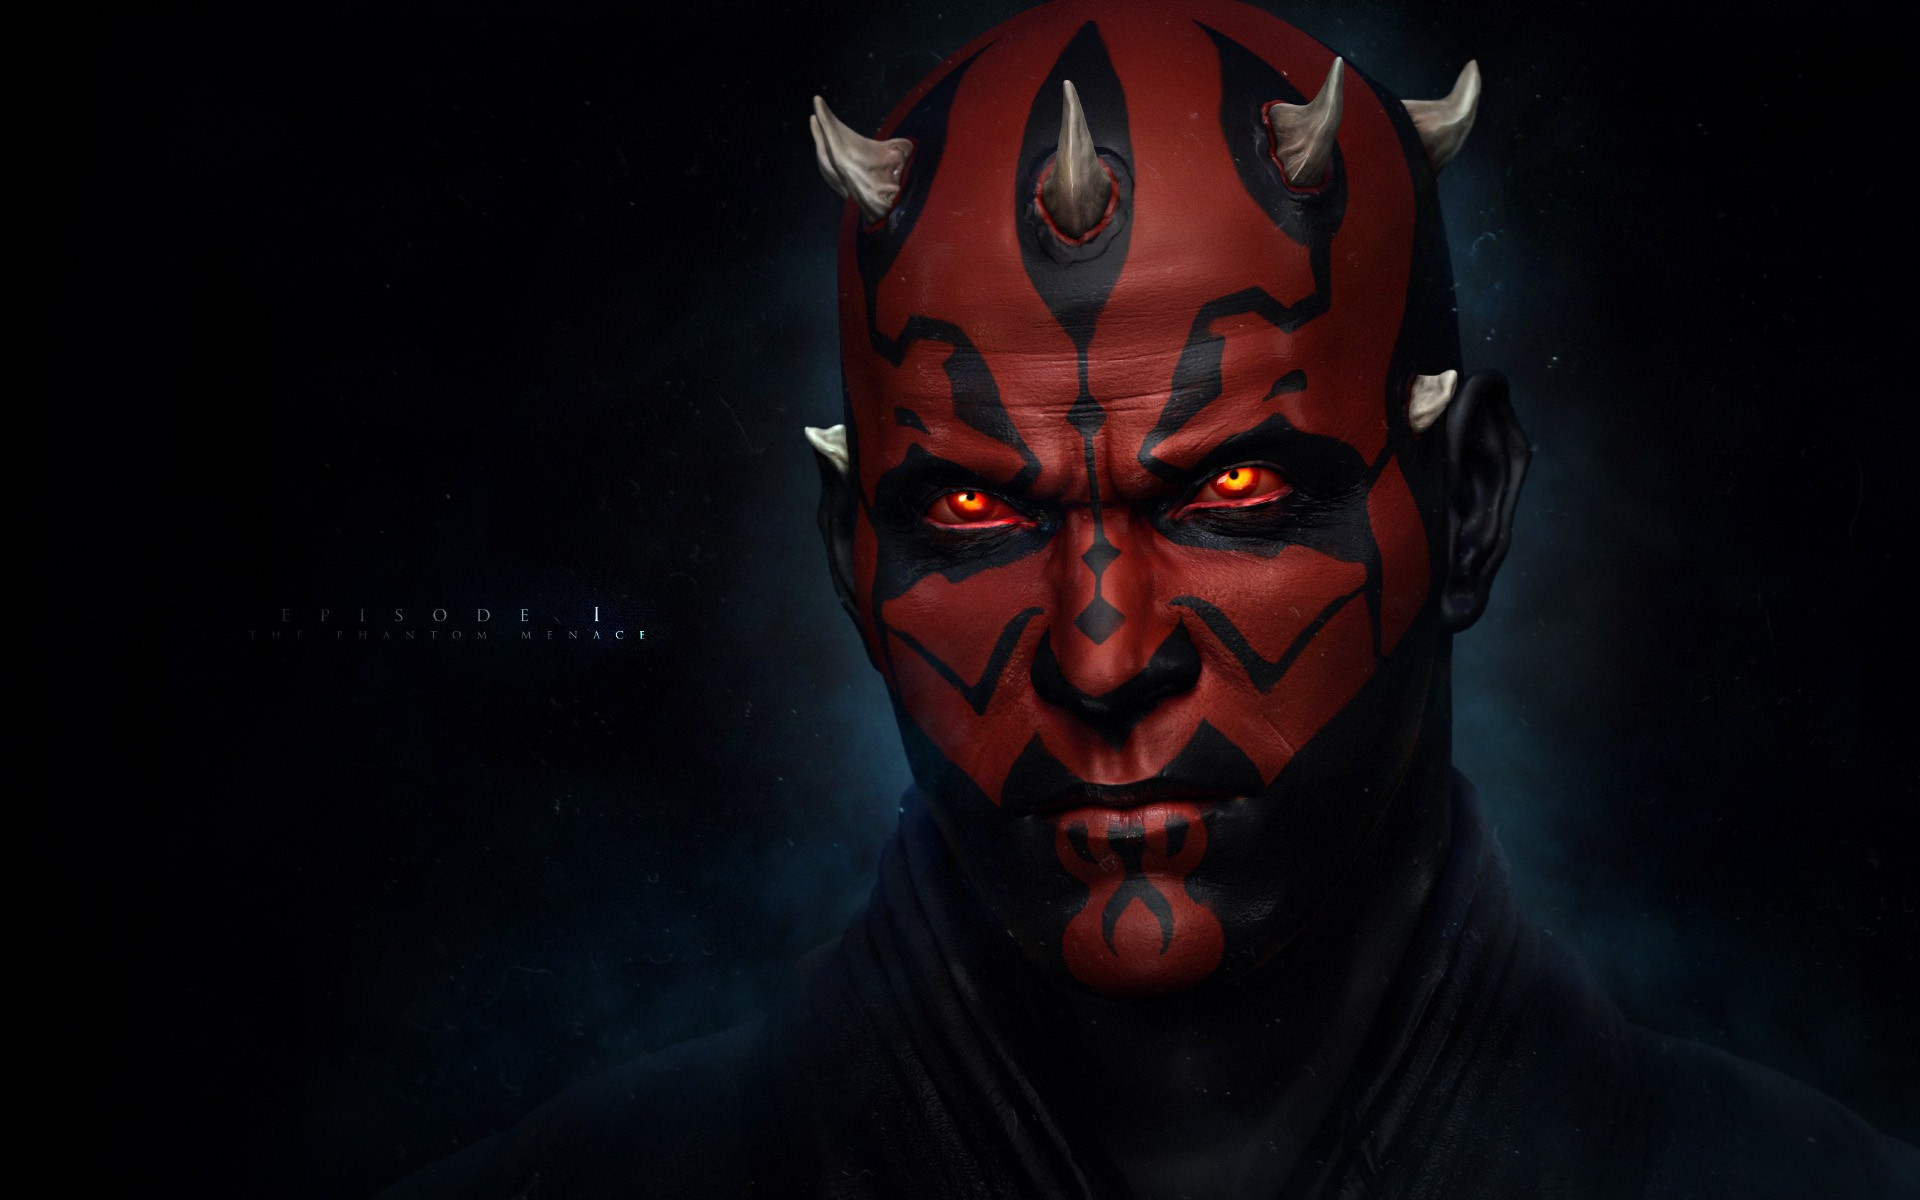 Yes the very same Darth Maul who got chopped in half and tumbled down a pit in Star Wars Episode I The Phantom Menace So how is Darth Maul alive and